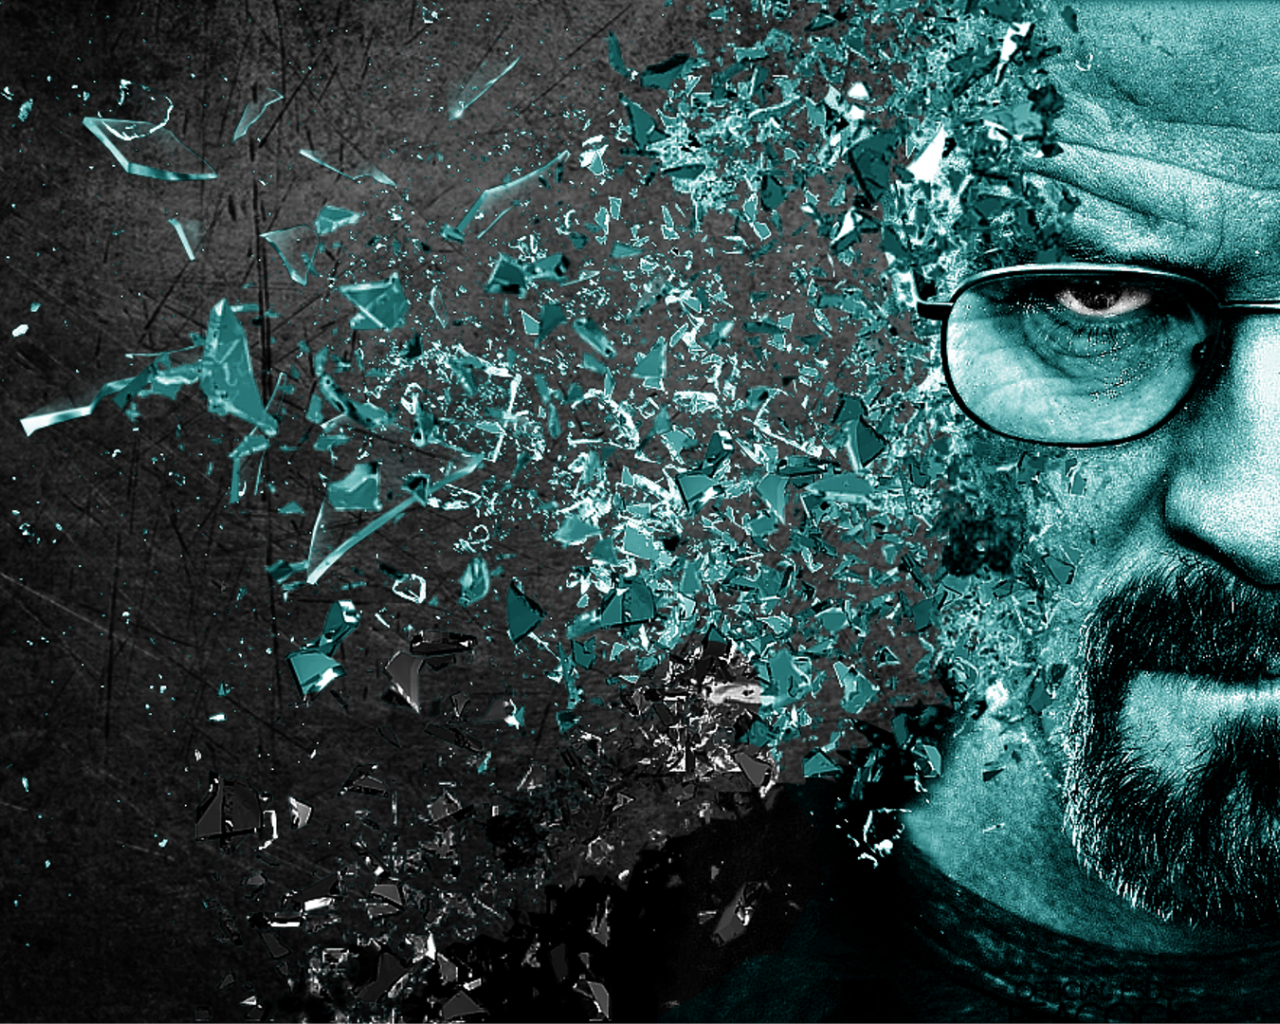 Free download Breaking Bad HD Wallpapers 1920x1080 for ...